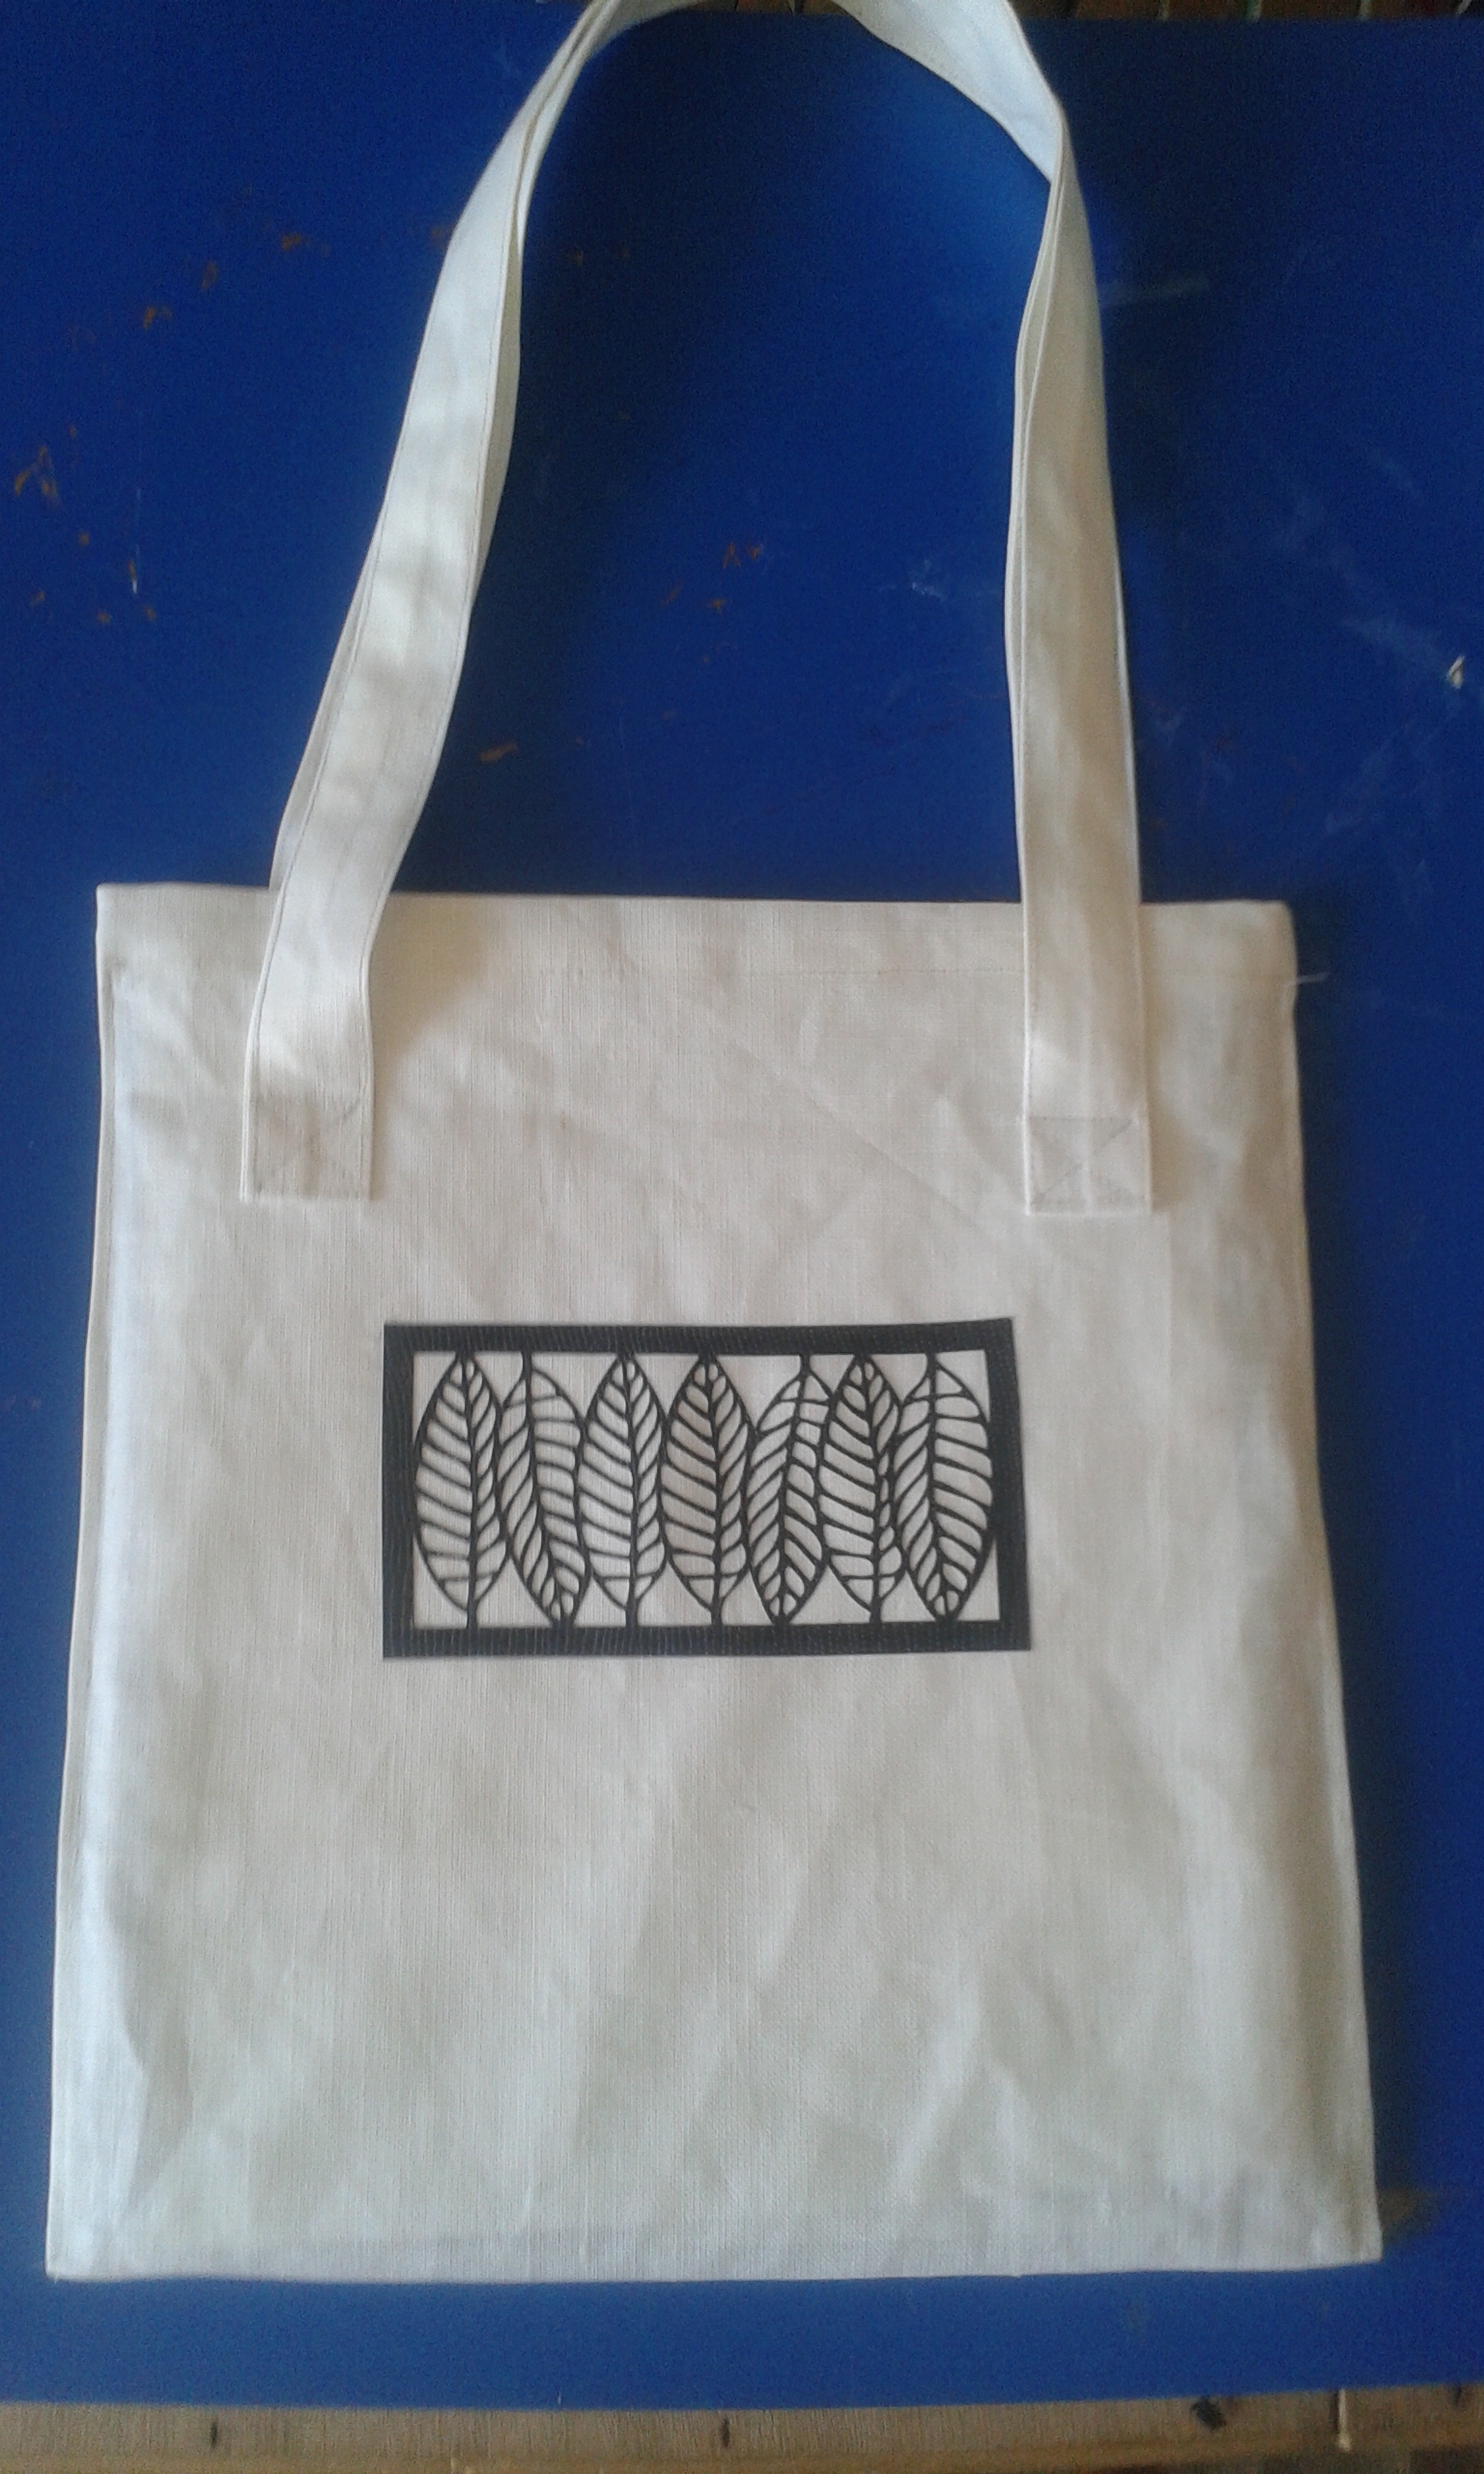 tote bag, lin, scanncut